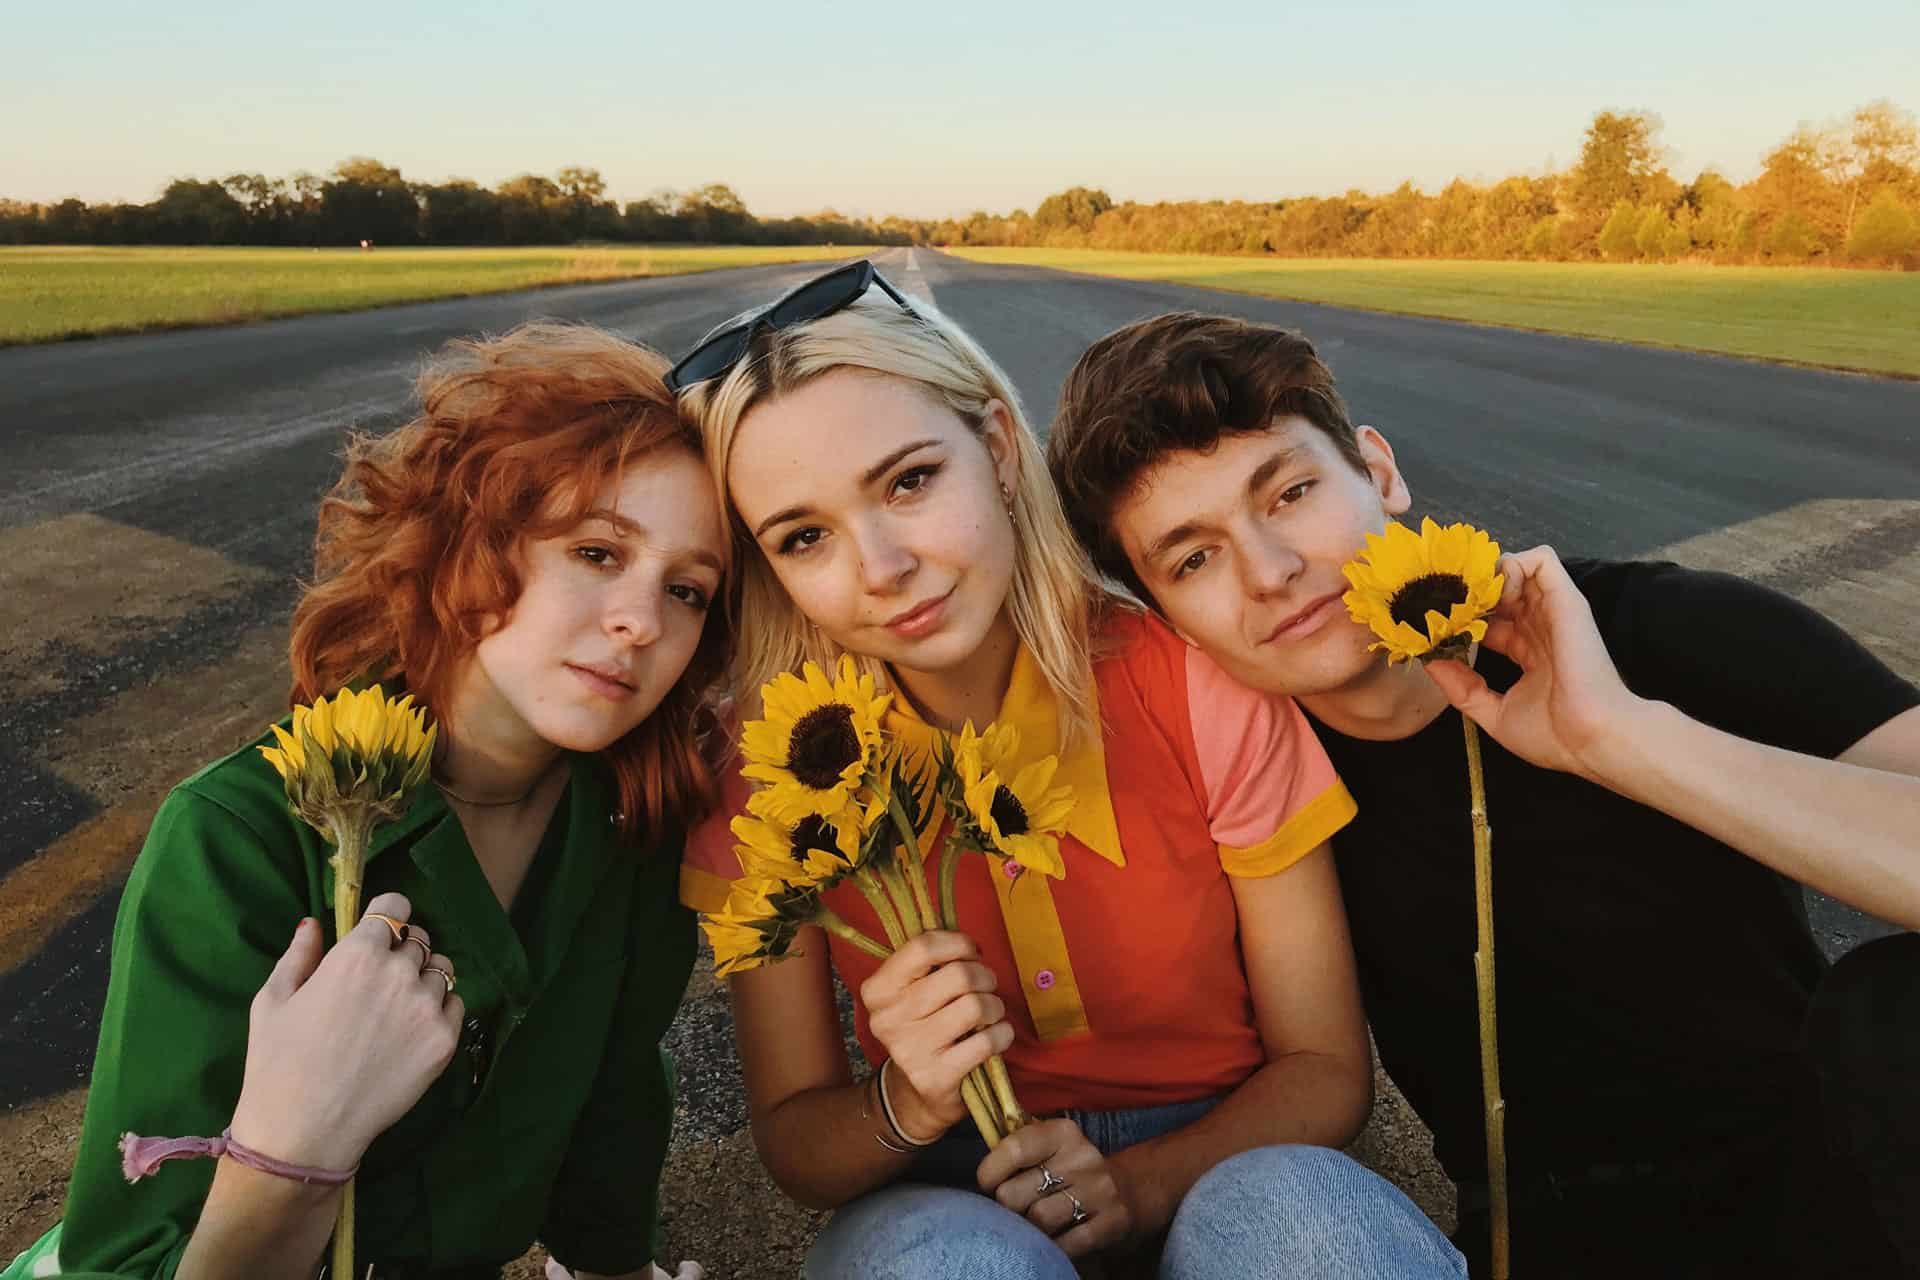 Die Band The Regrettes